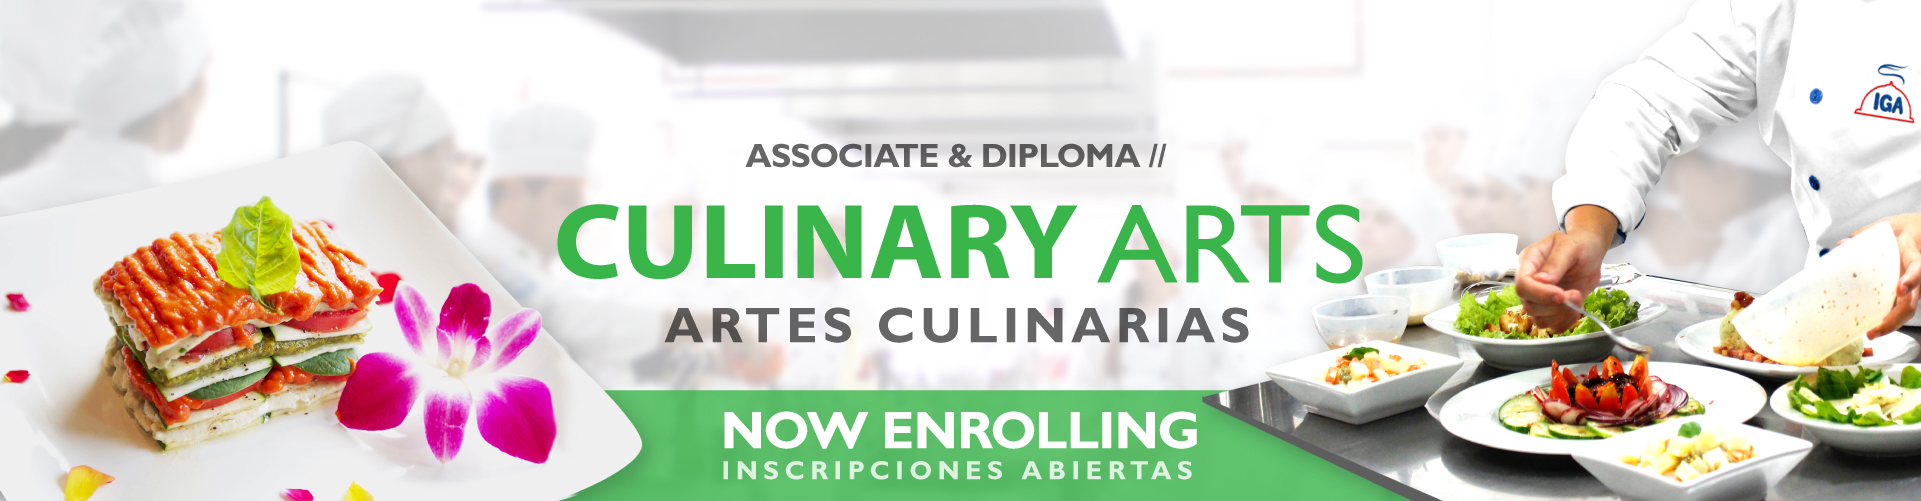 Associate&diploma culinary arts